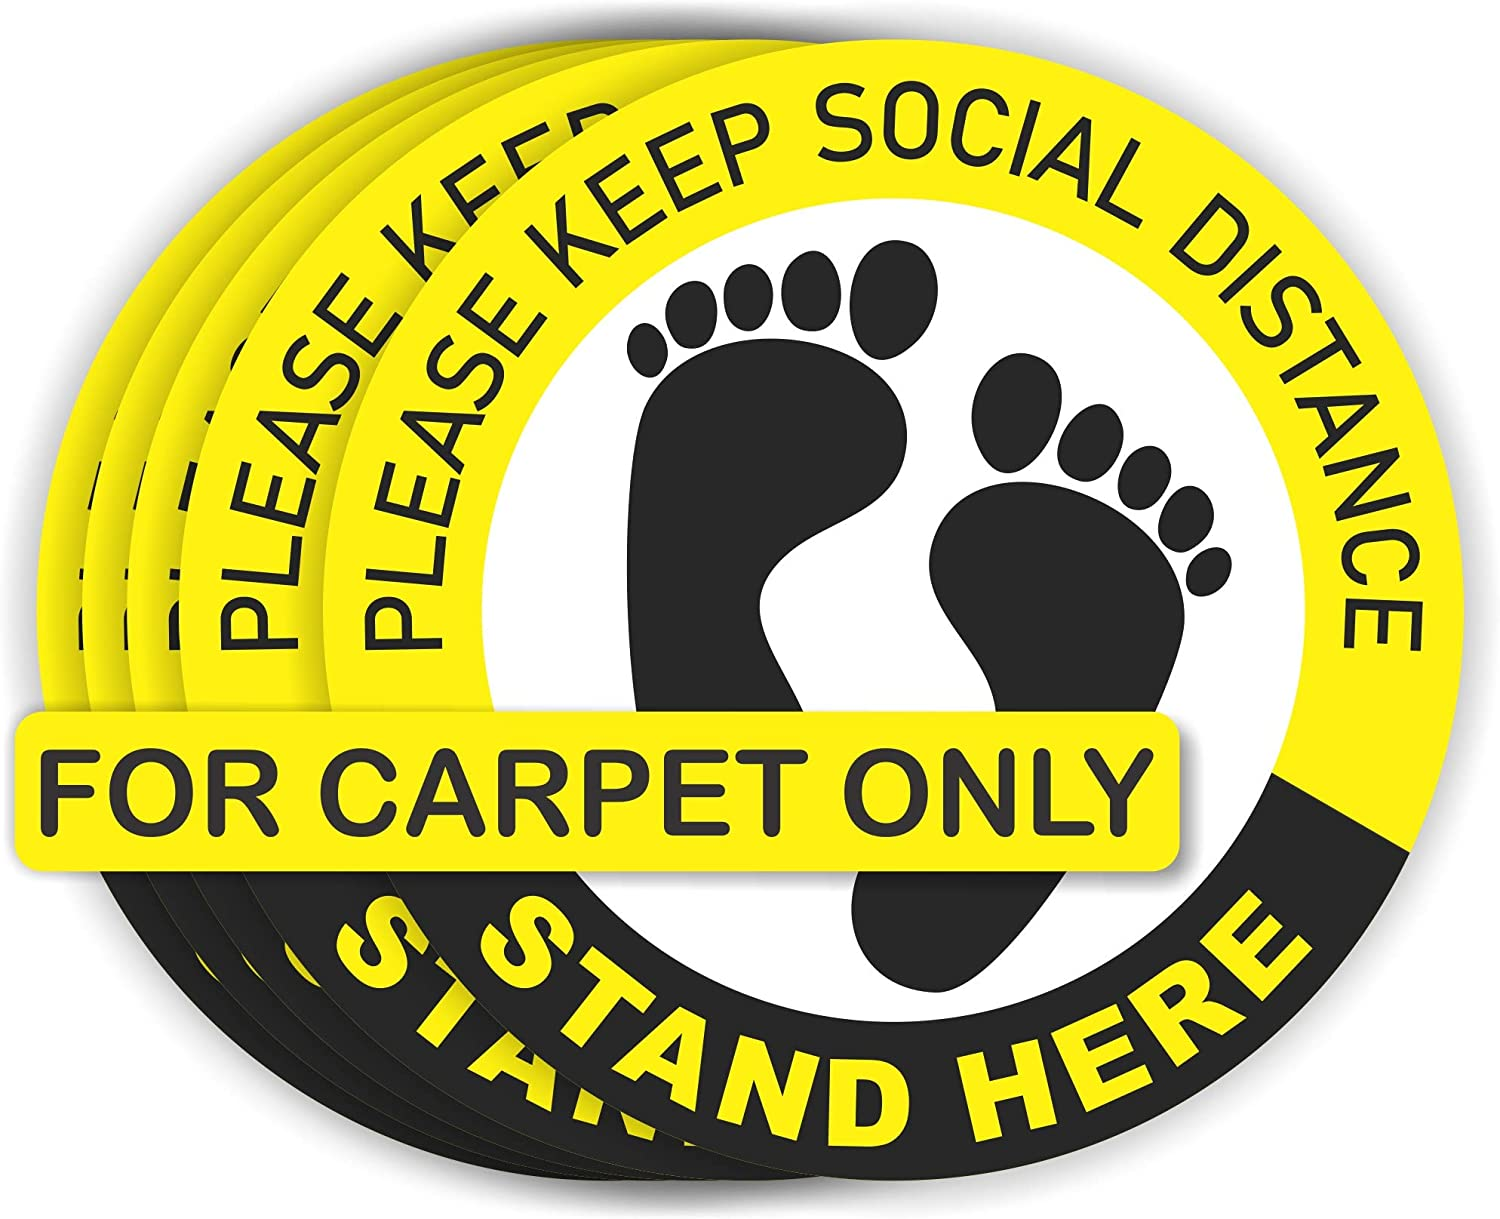 Social distancing floor decals for carpet 6 shopping ft. Ranking TOP20 5 p sign